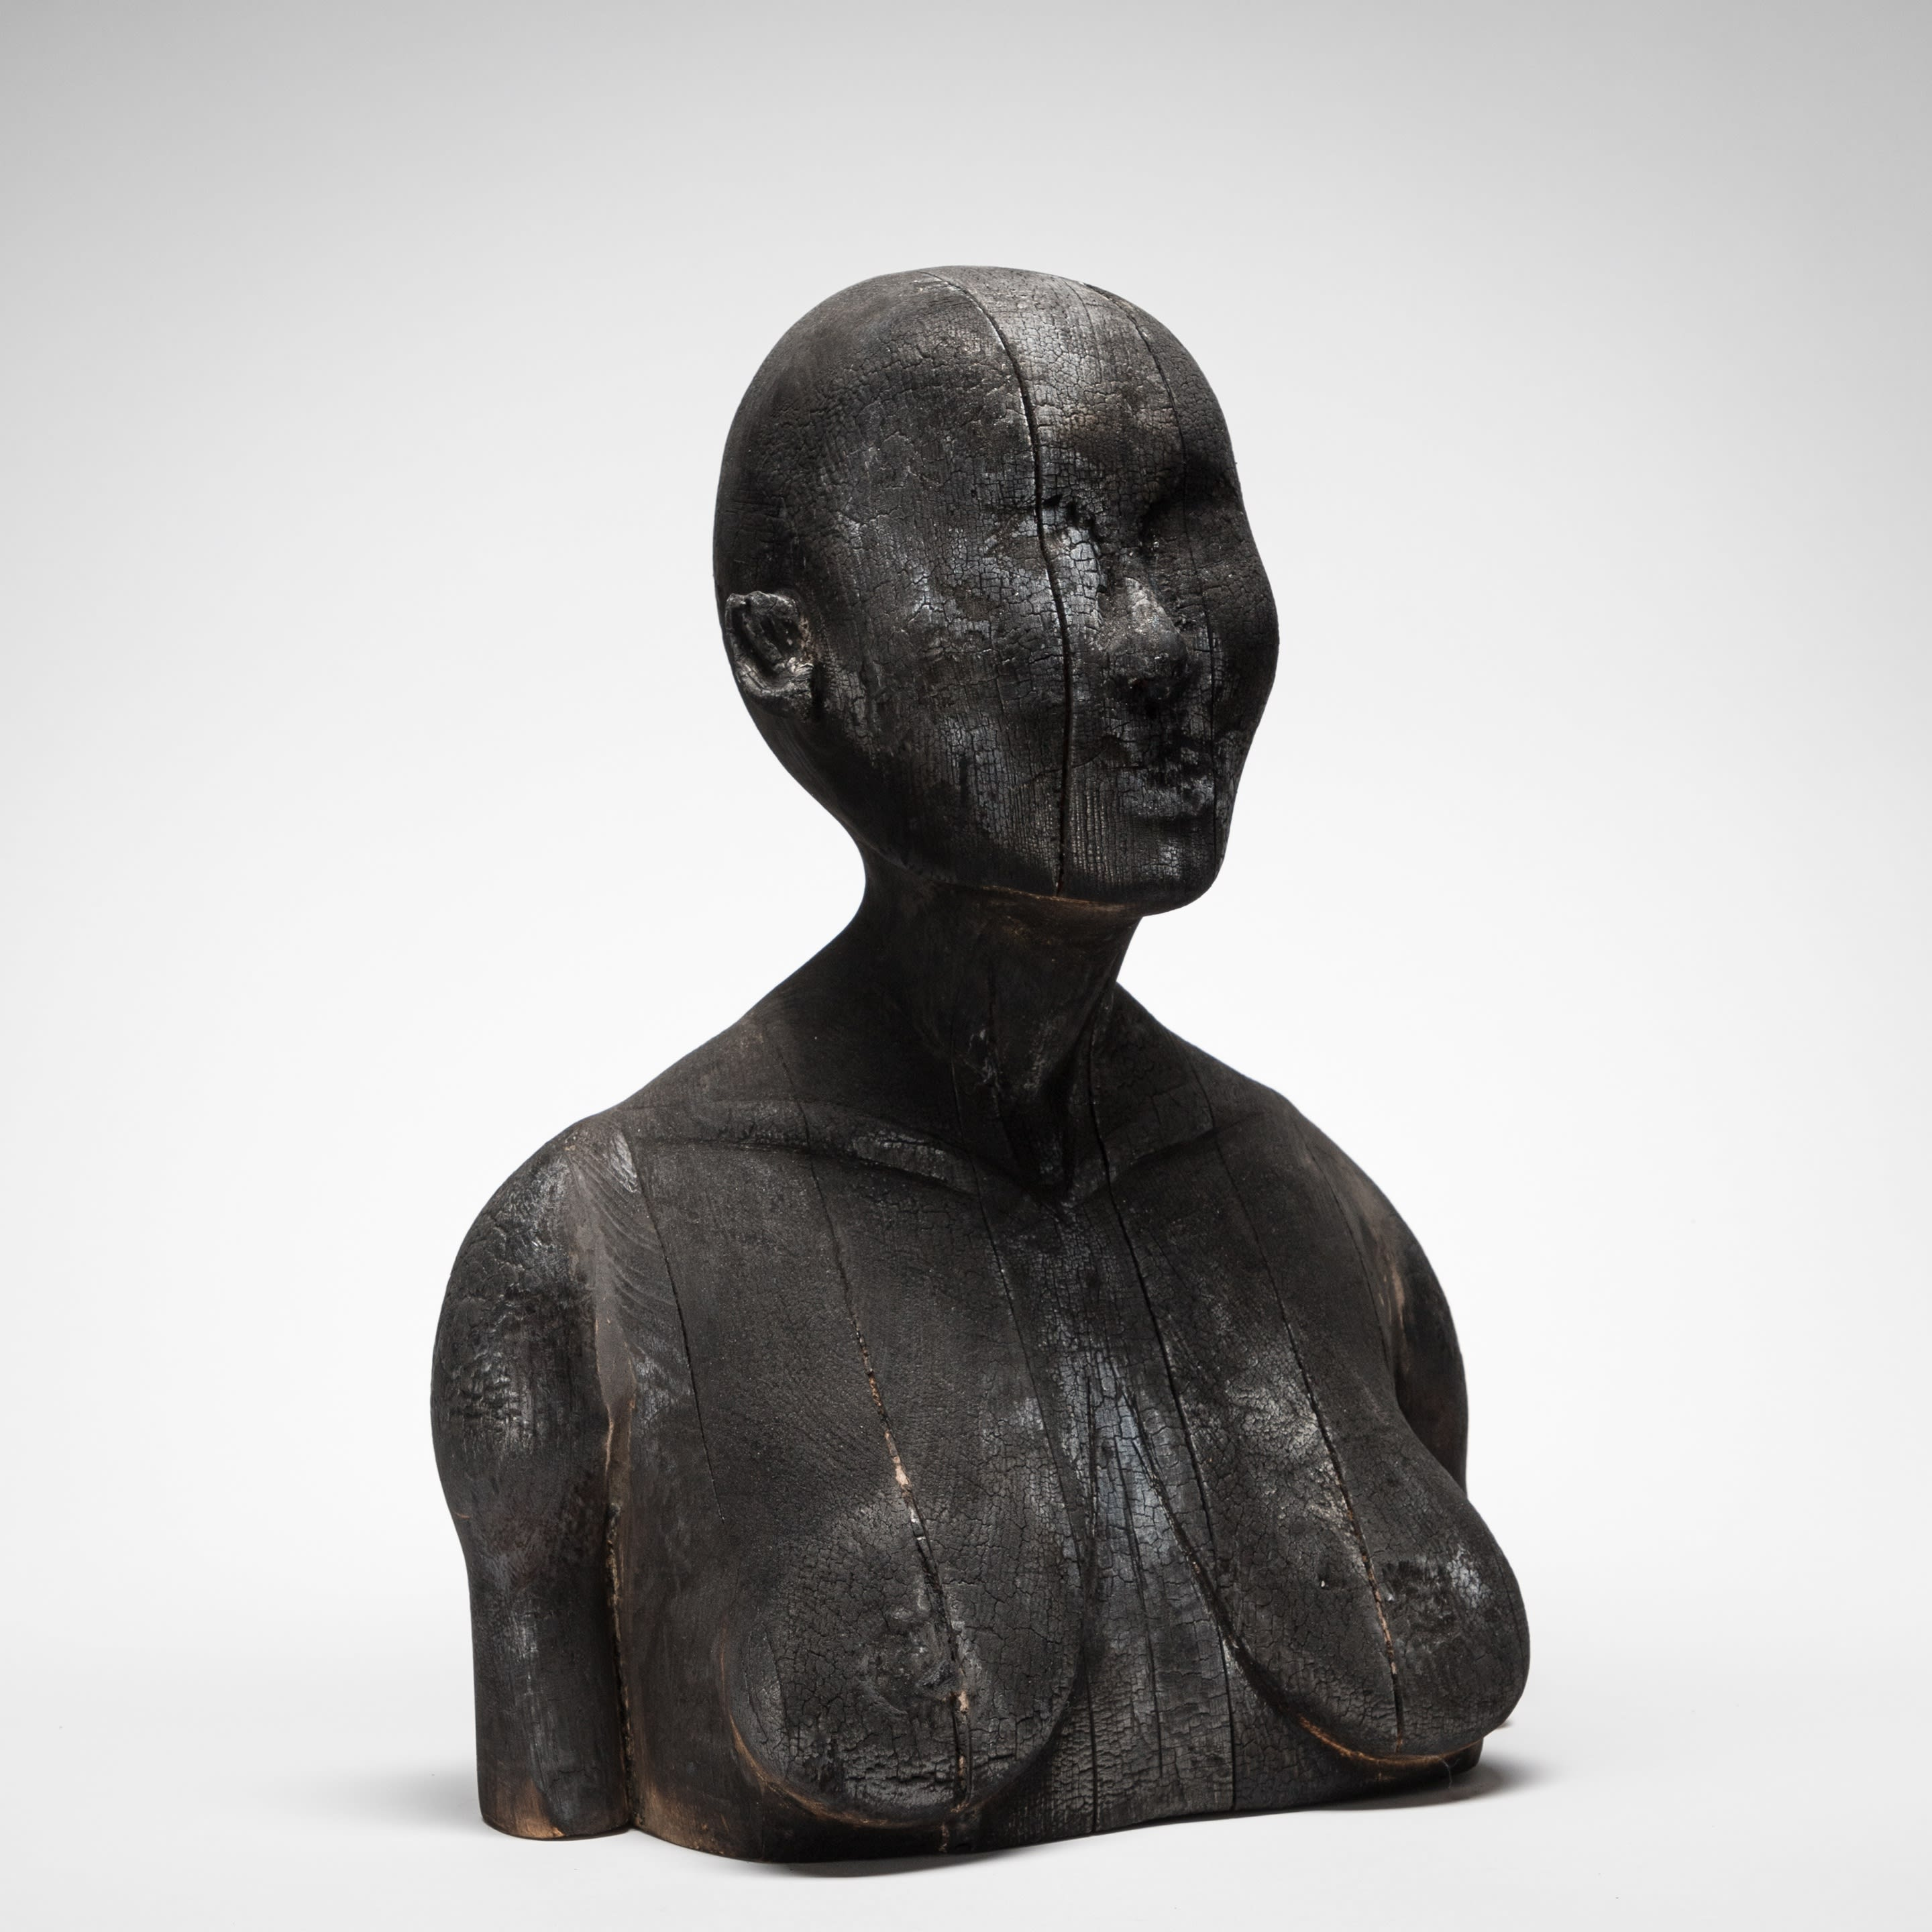 Sculpture by Thais Mather at Form & Concept Gallery